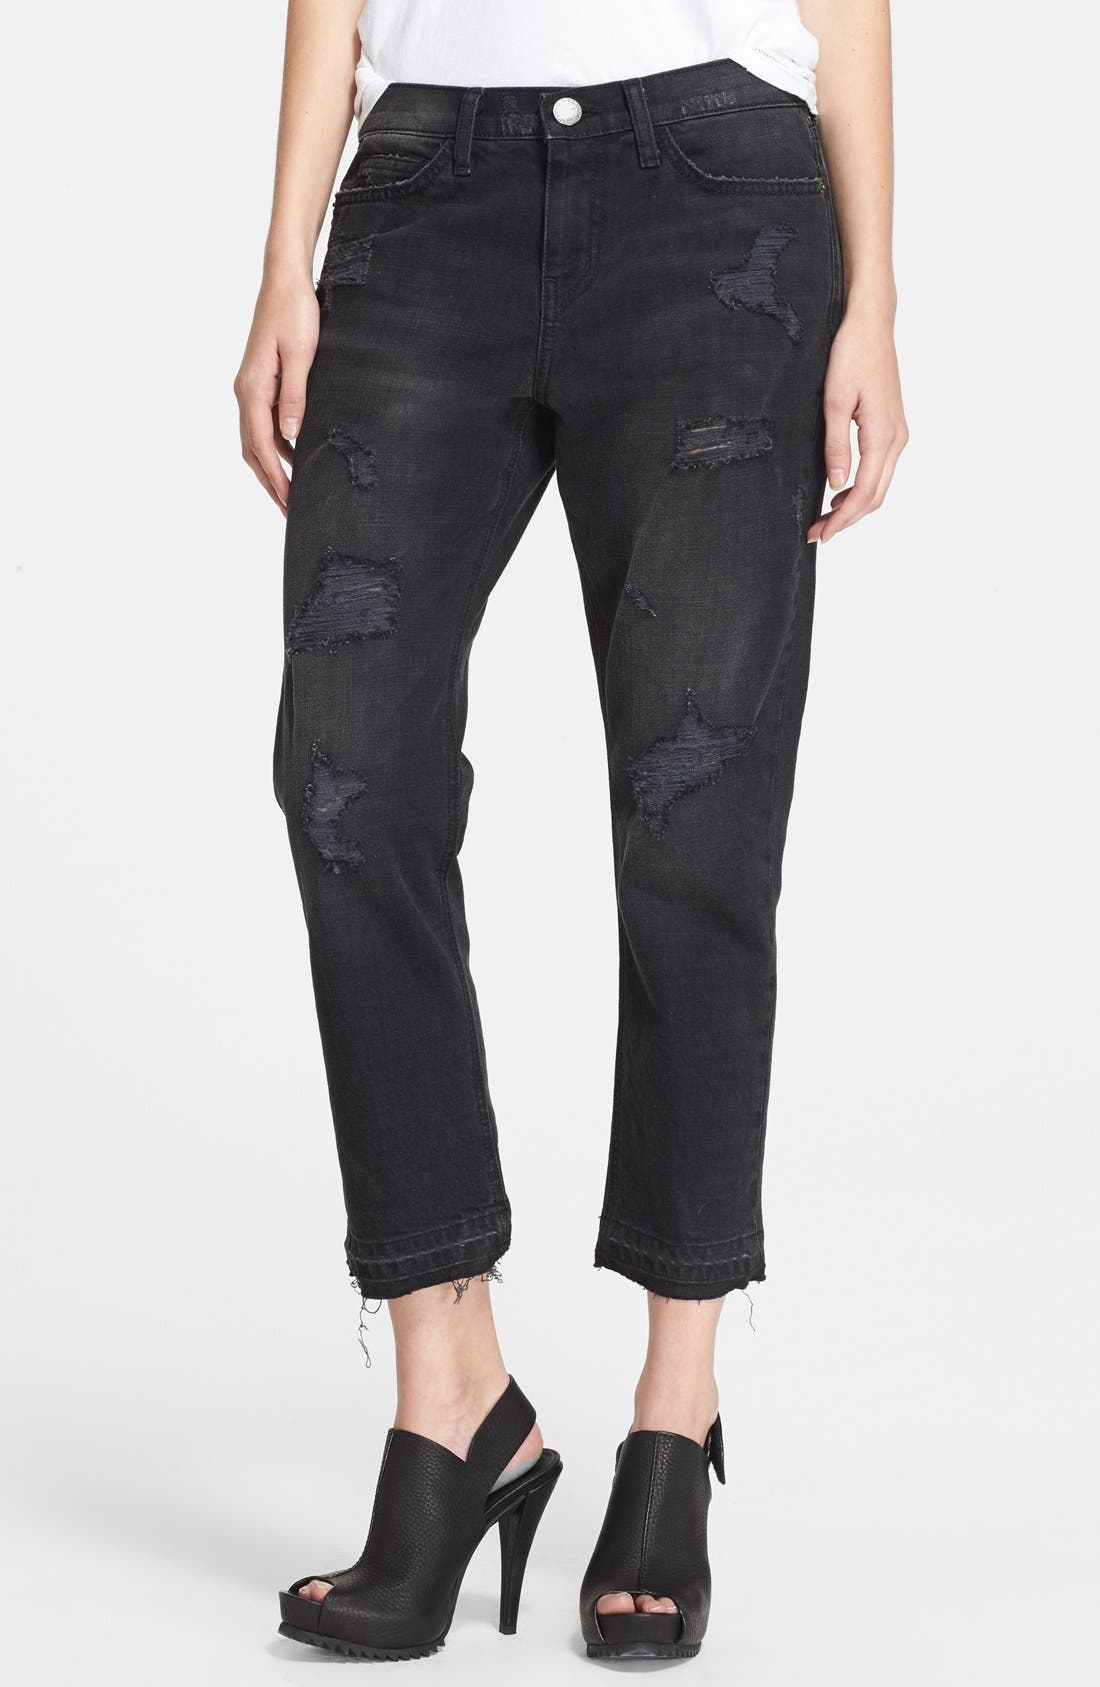 Main Image - Current/Elliott 'The Cropped Straight' Destroyed Jeans (Townhouse Destroy) (Nordstrom Exclusive)